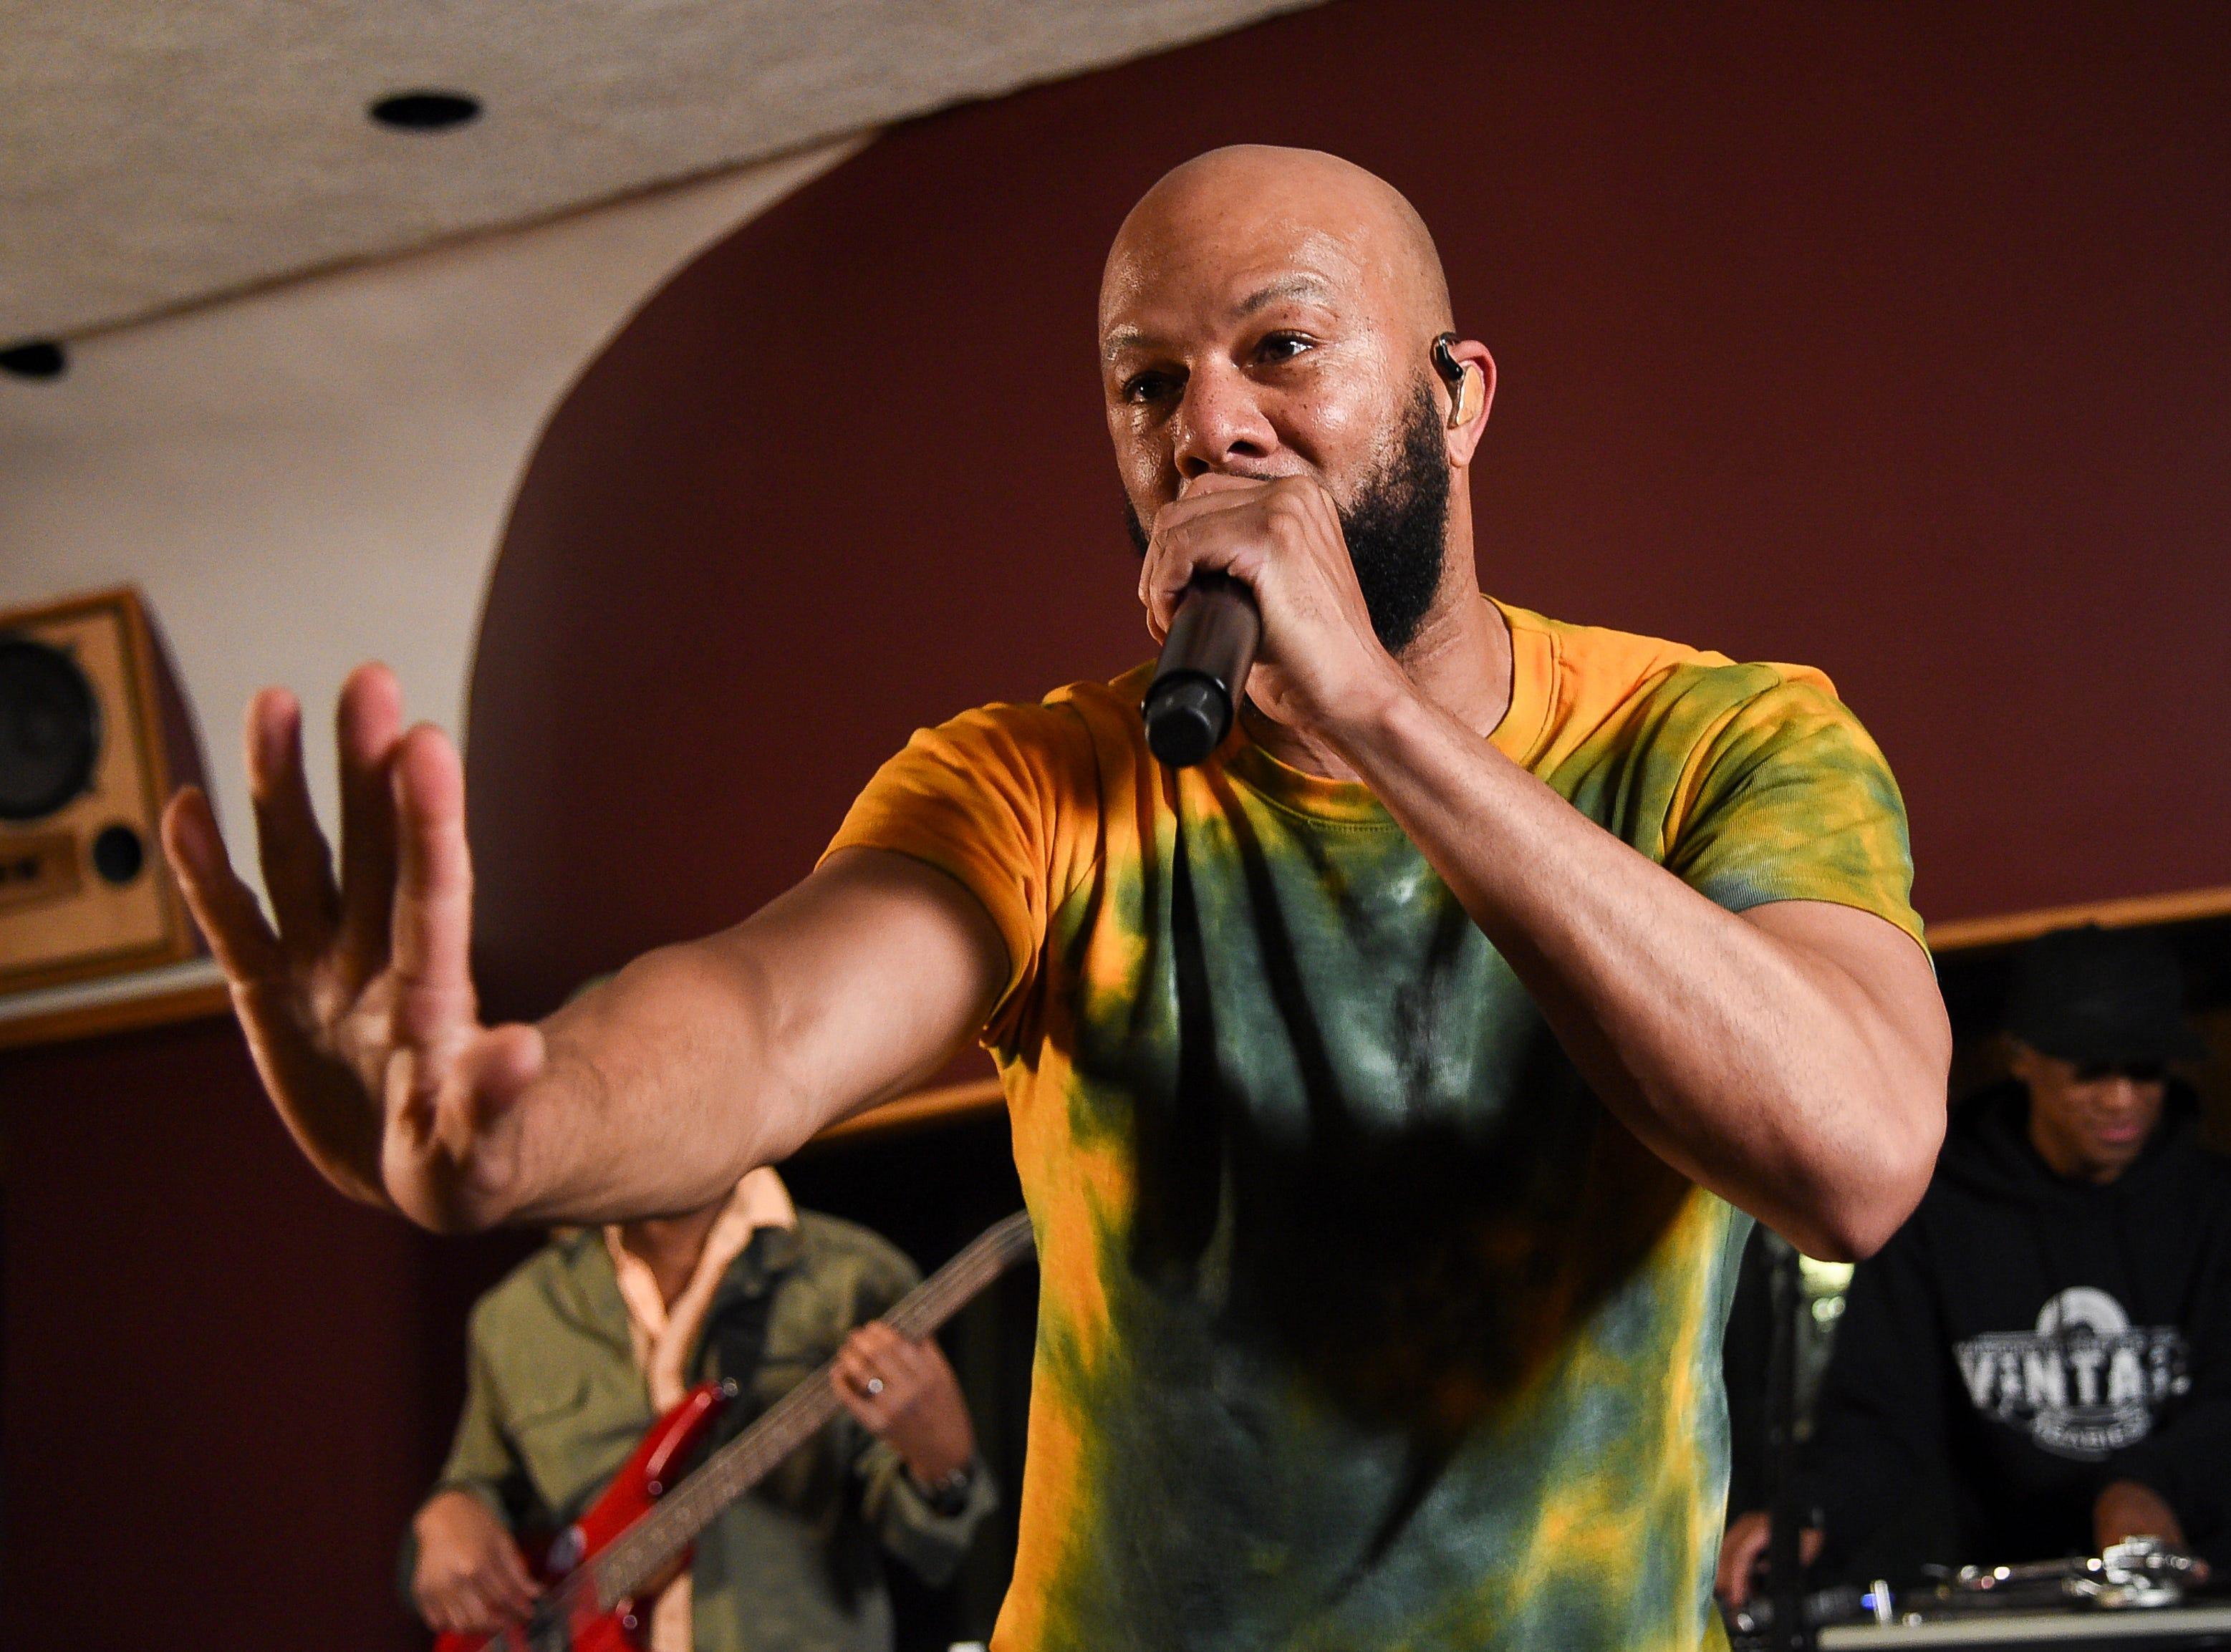 Common participates in the Woodstock 50 lineup announcement at Electric Lady Studios on Tuesday, March 19, 2019, in New York. (Photo by Evan Agostini/Invision/AP) ORG XMIT: NYEA114